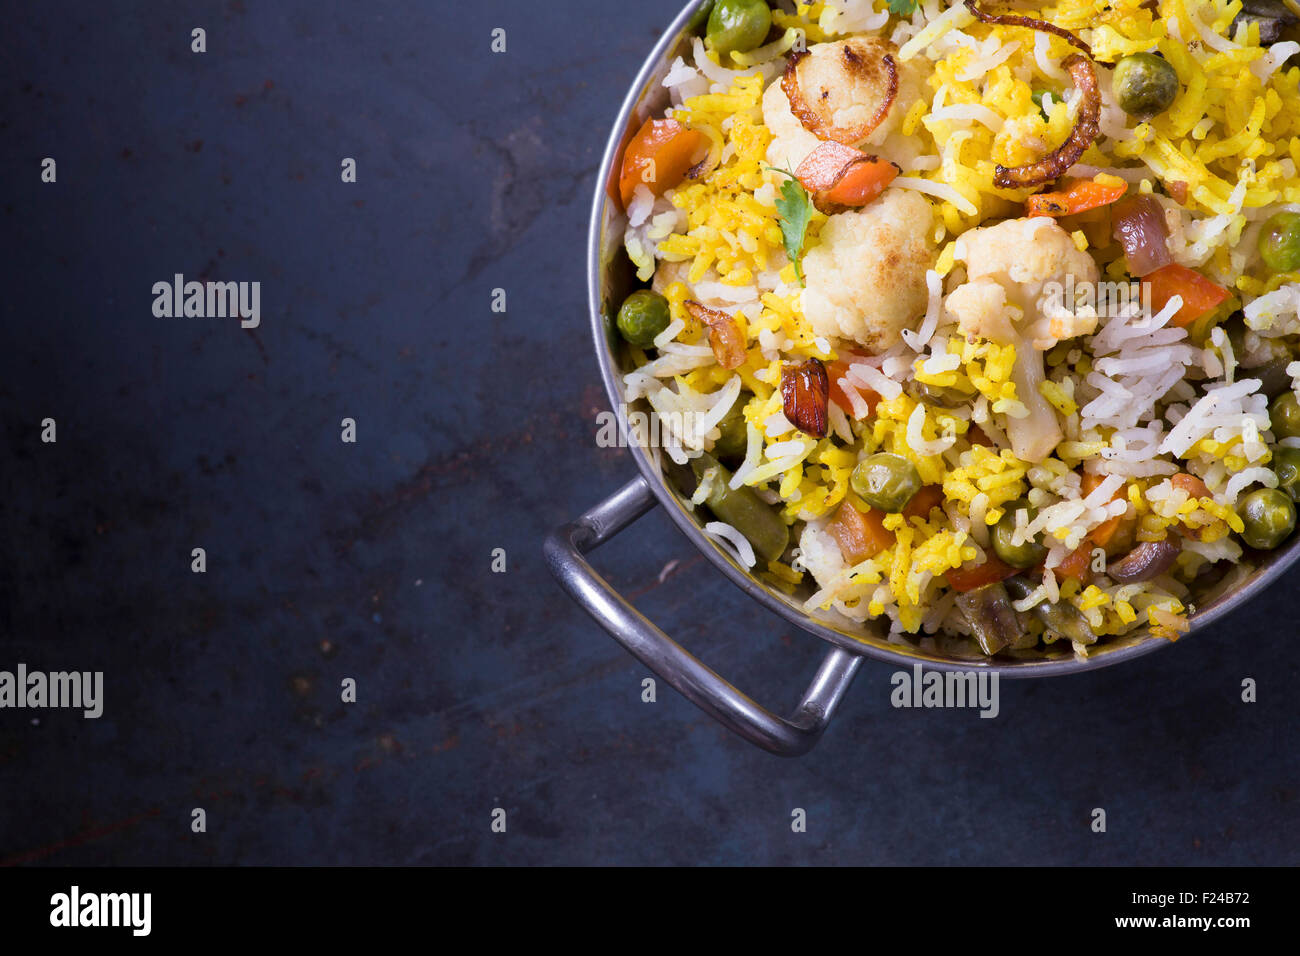 Biryani végétarien sur dark metal background with copy space Photo Stock